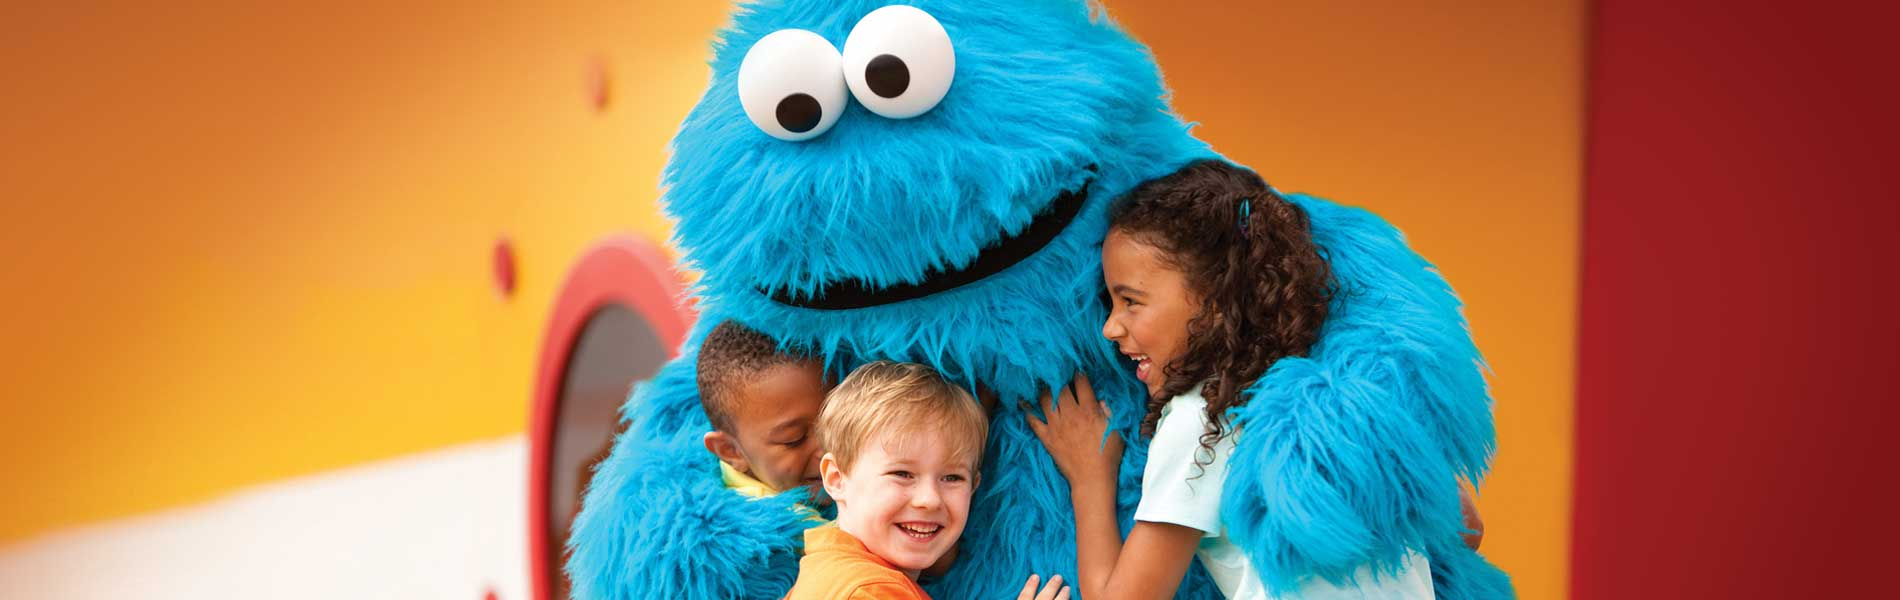 Cookie Monster hugs kids at Sesame Place theme park